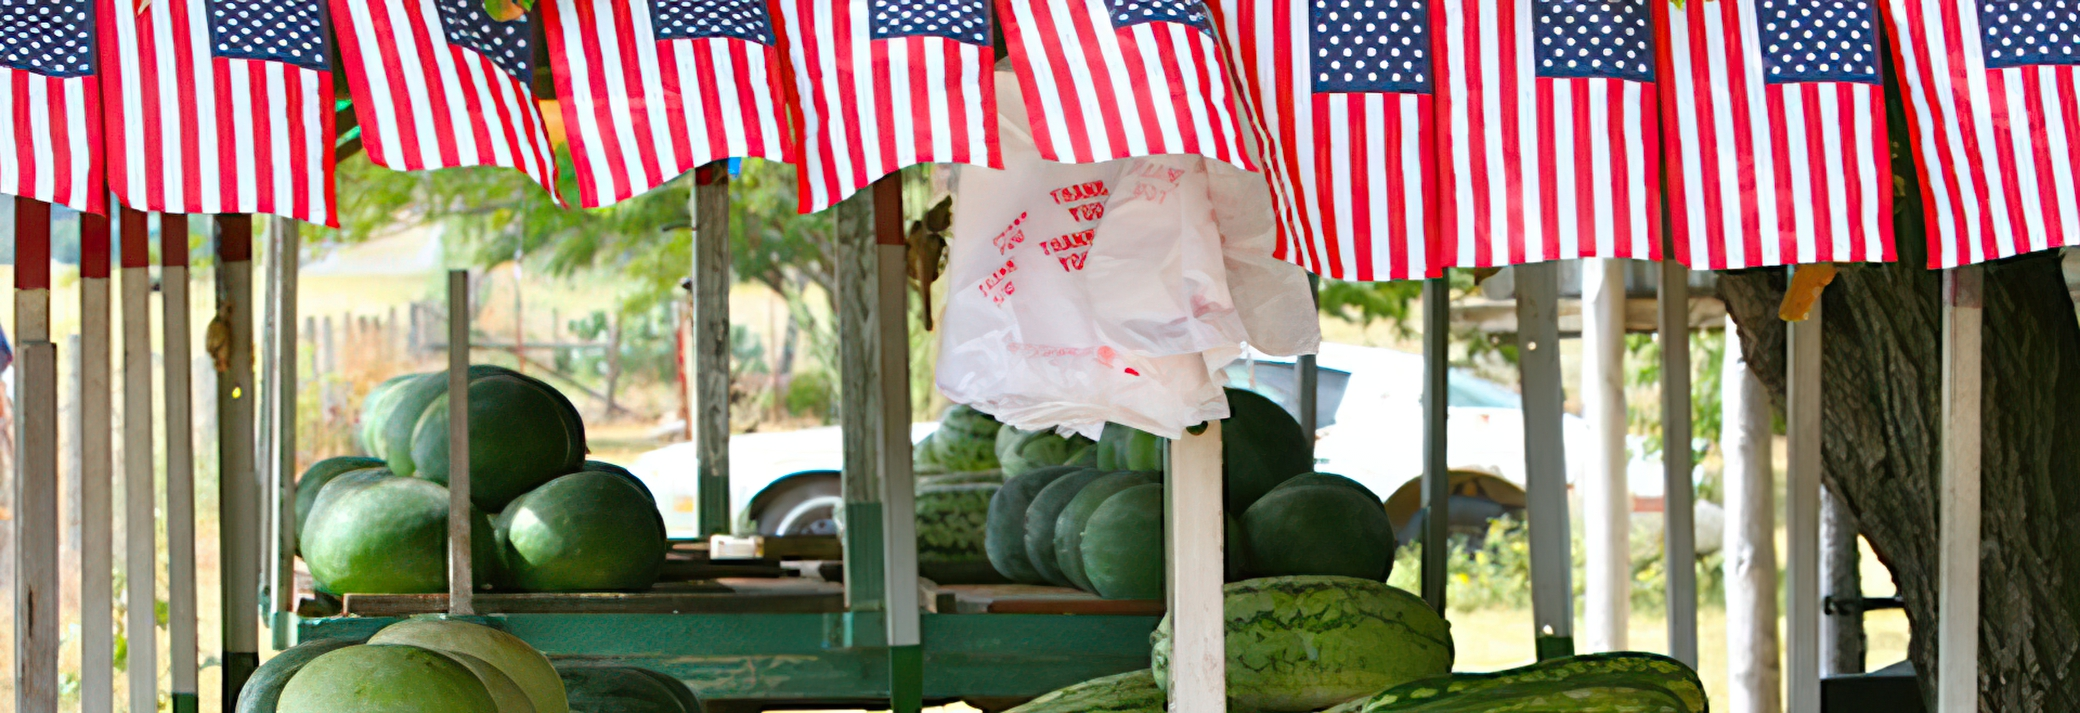 American flags and watermelons